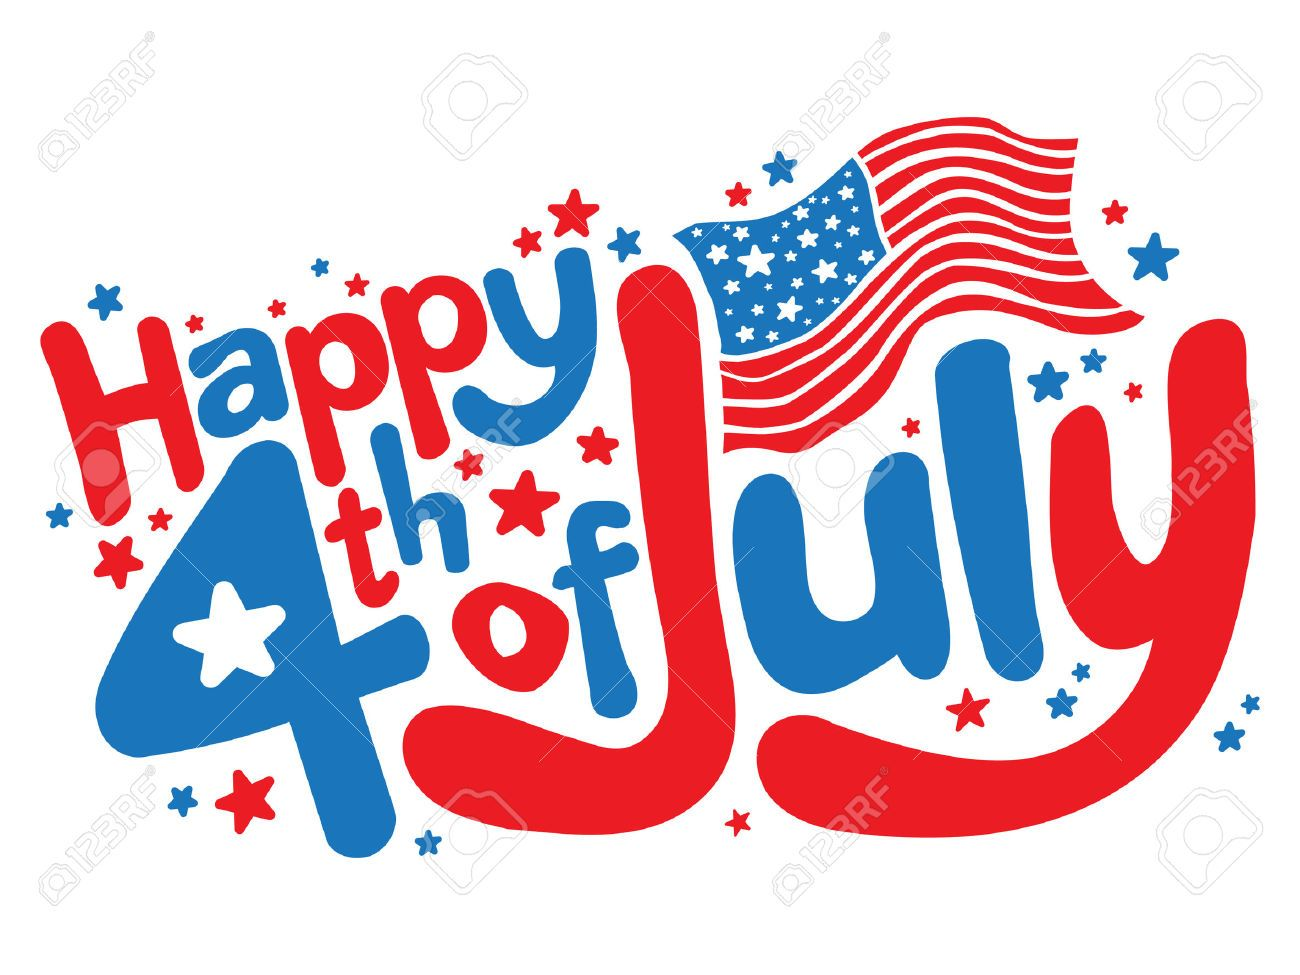 hight resolution of happy 4th of july fun text vector graphic royalty free cliparts